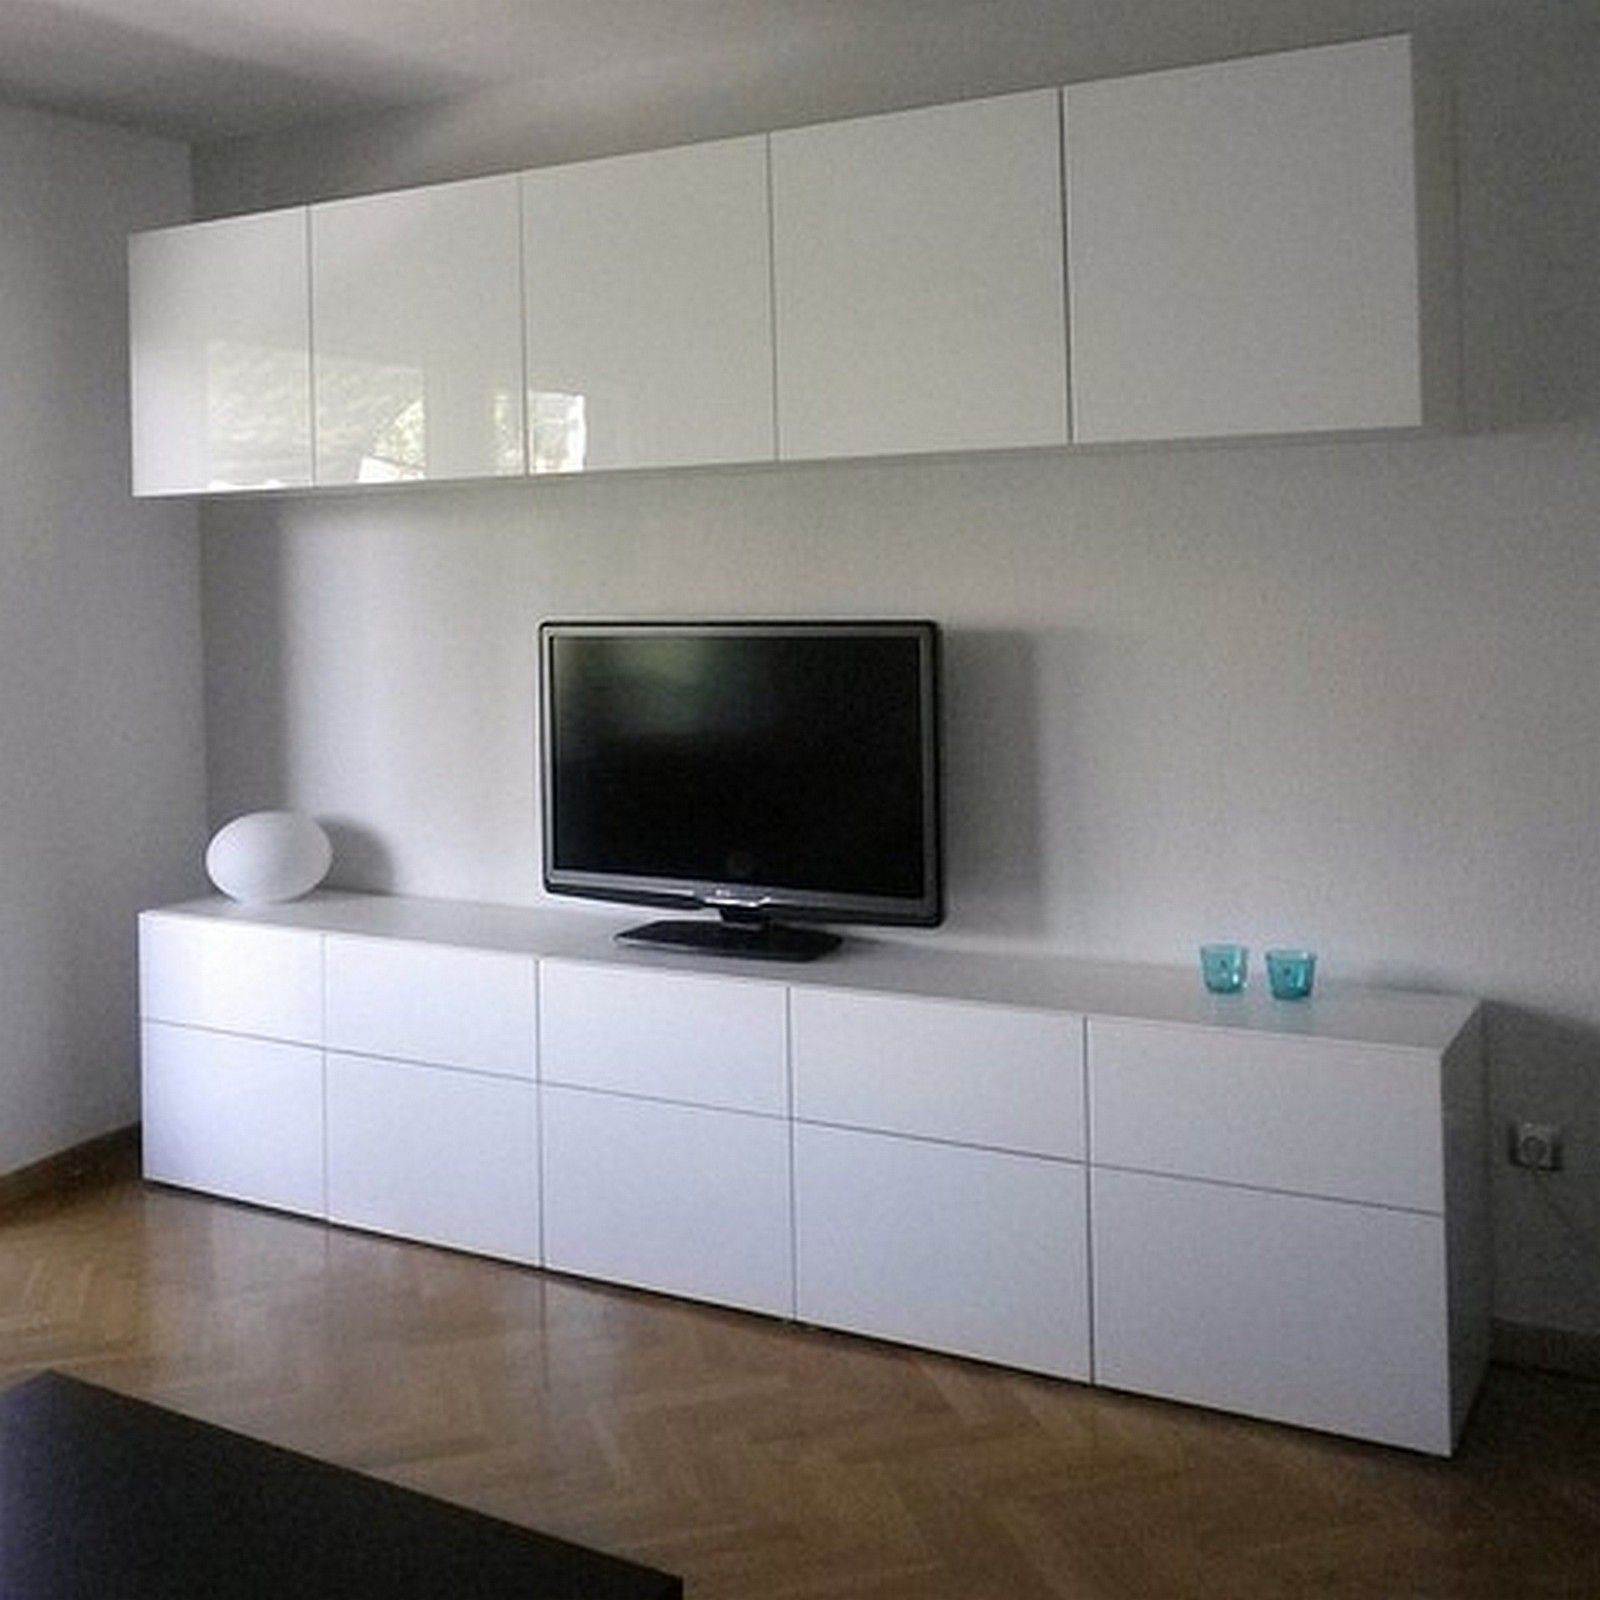 Besta Tv Ikea Besta Cabinets With High Gloss Doors In Living Room